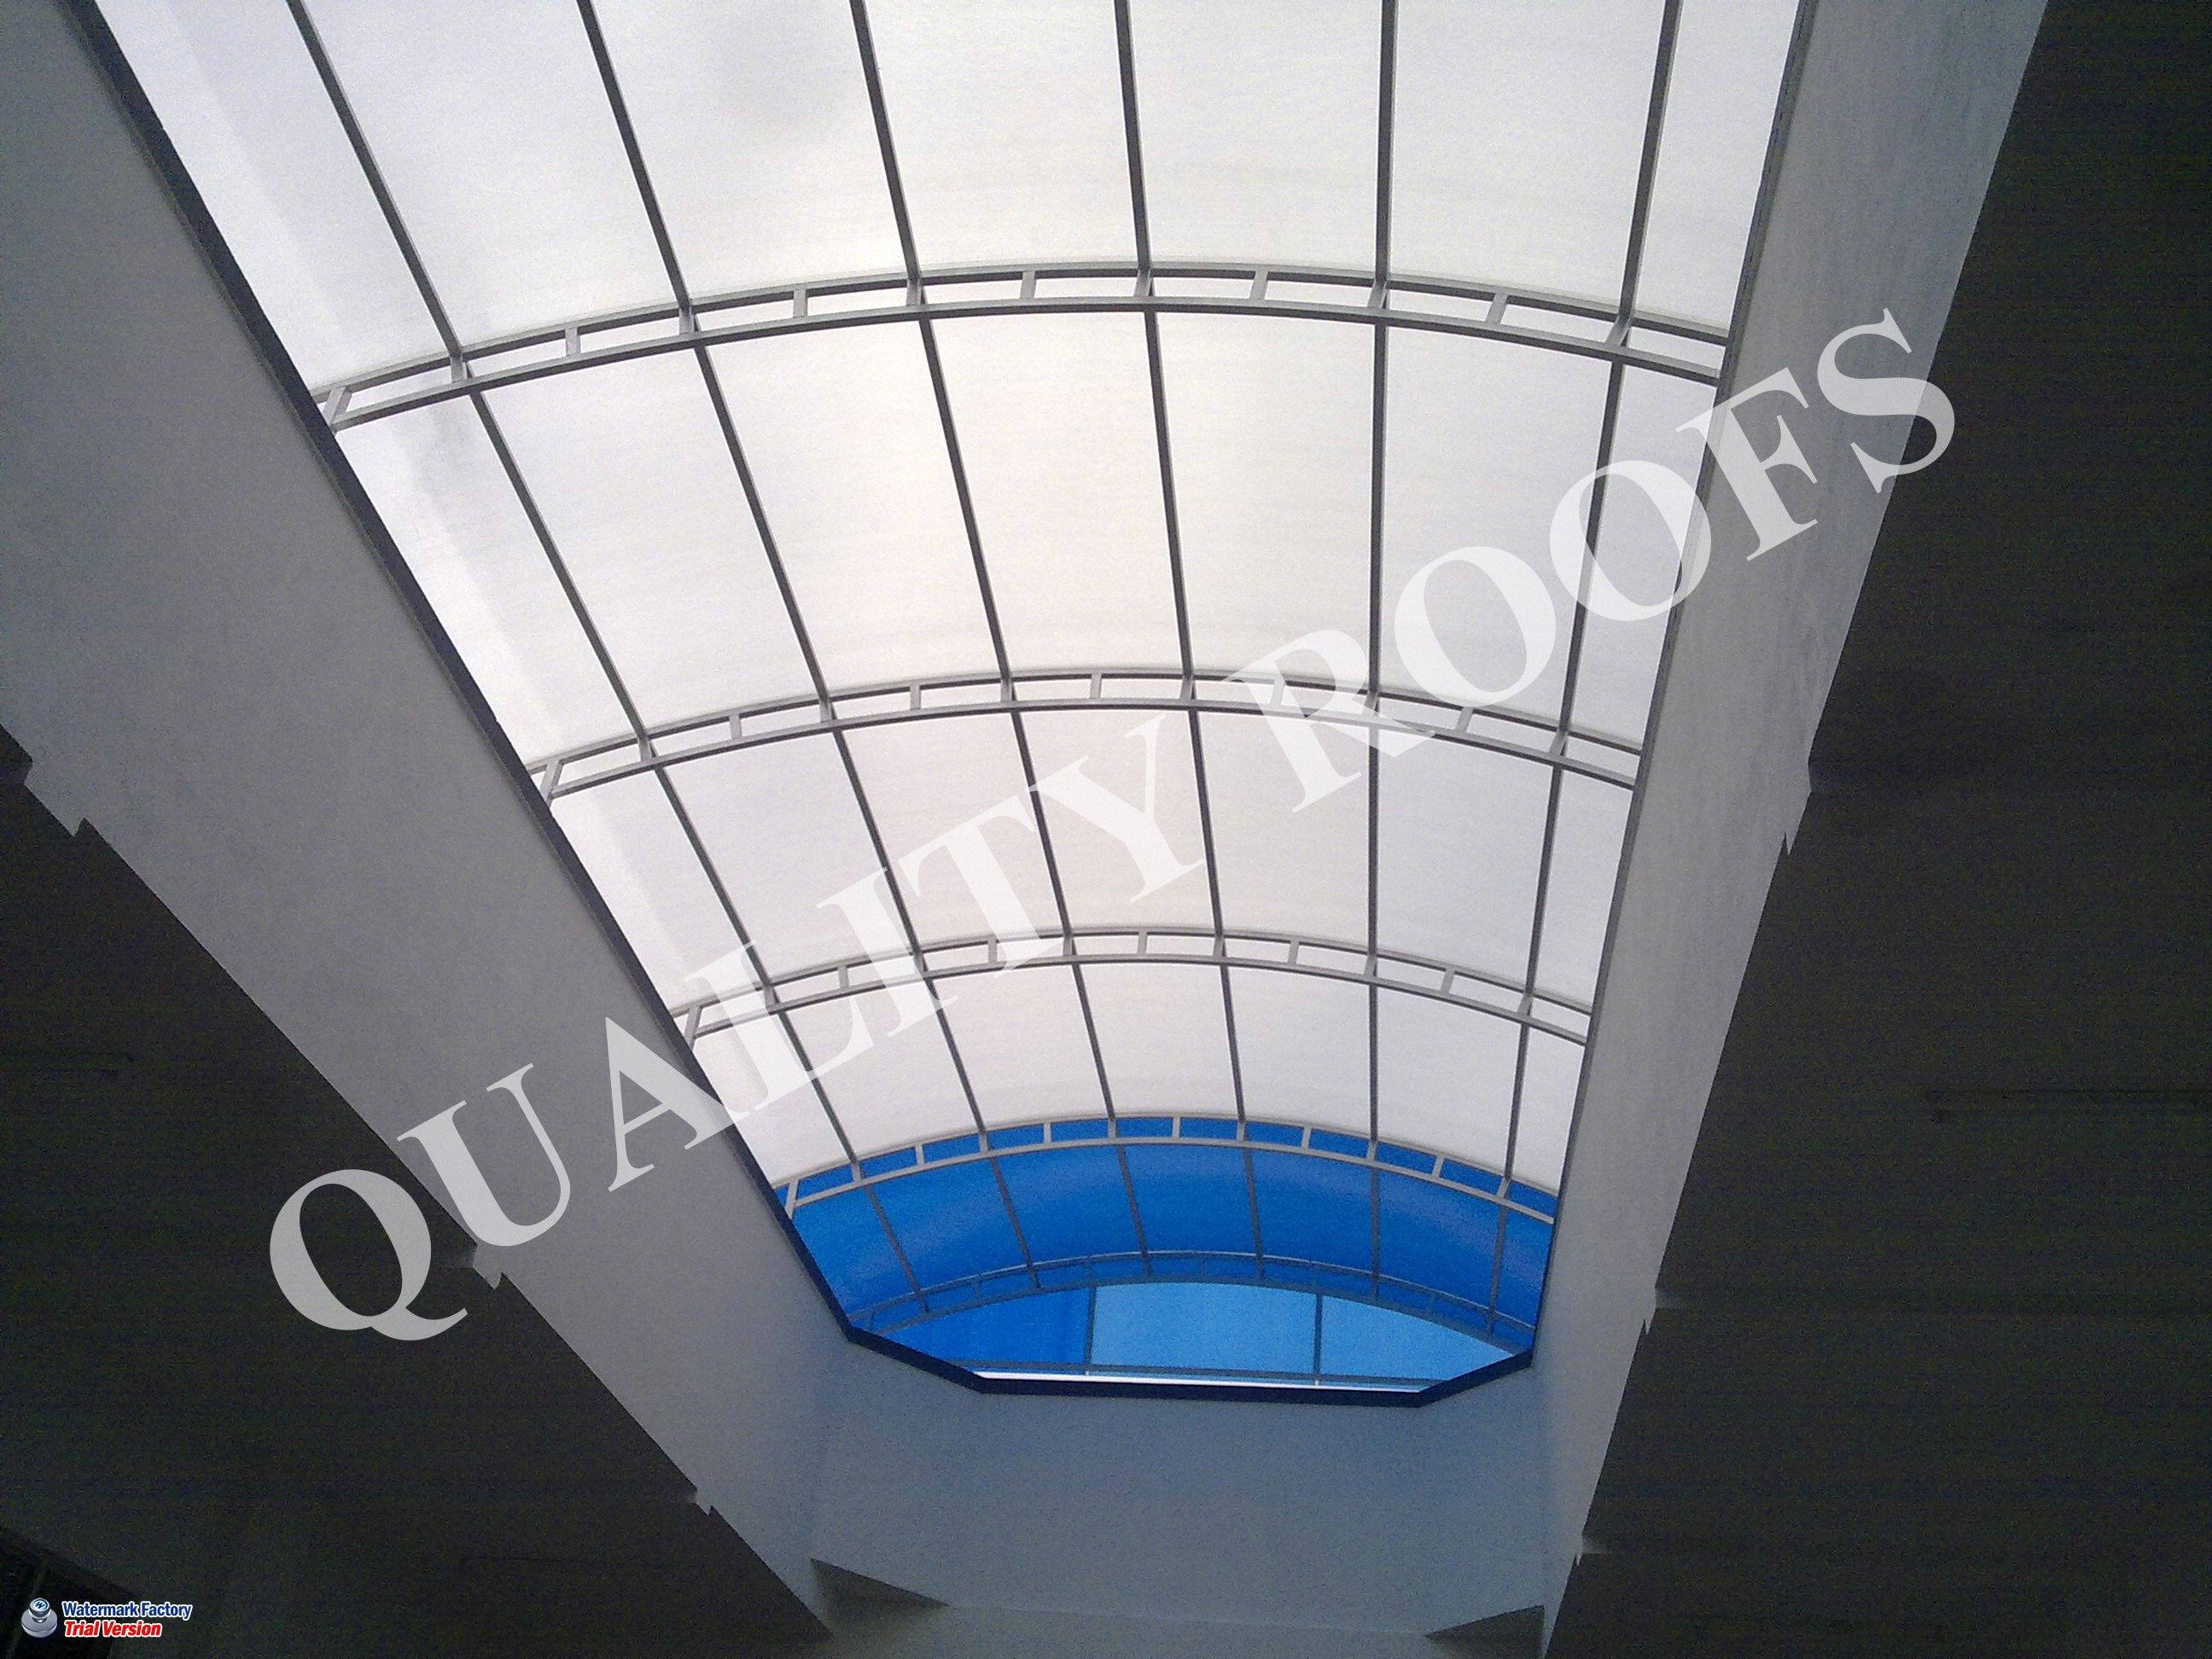 Best Polycarbonate Roofing Contractors In Chennai We Are The Leading Polycarbonate Roofing Contractors Roofing Contractors Roofing Sheets Industrial Roofing